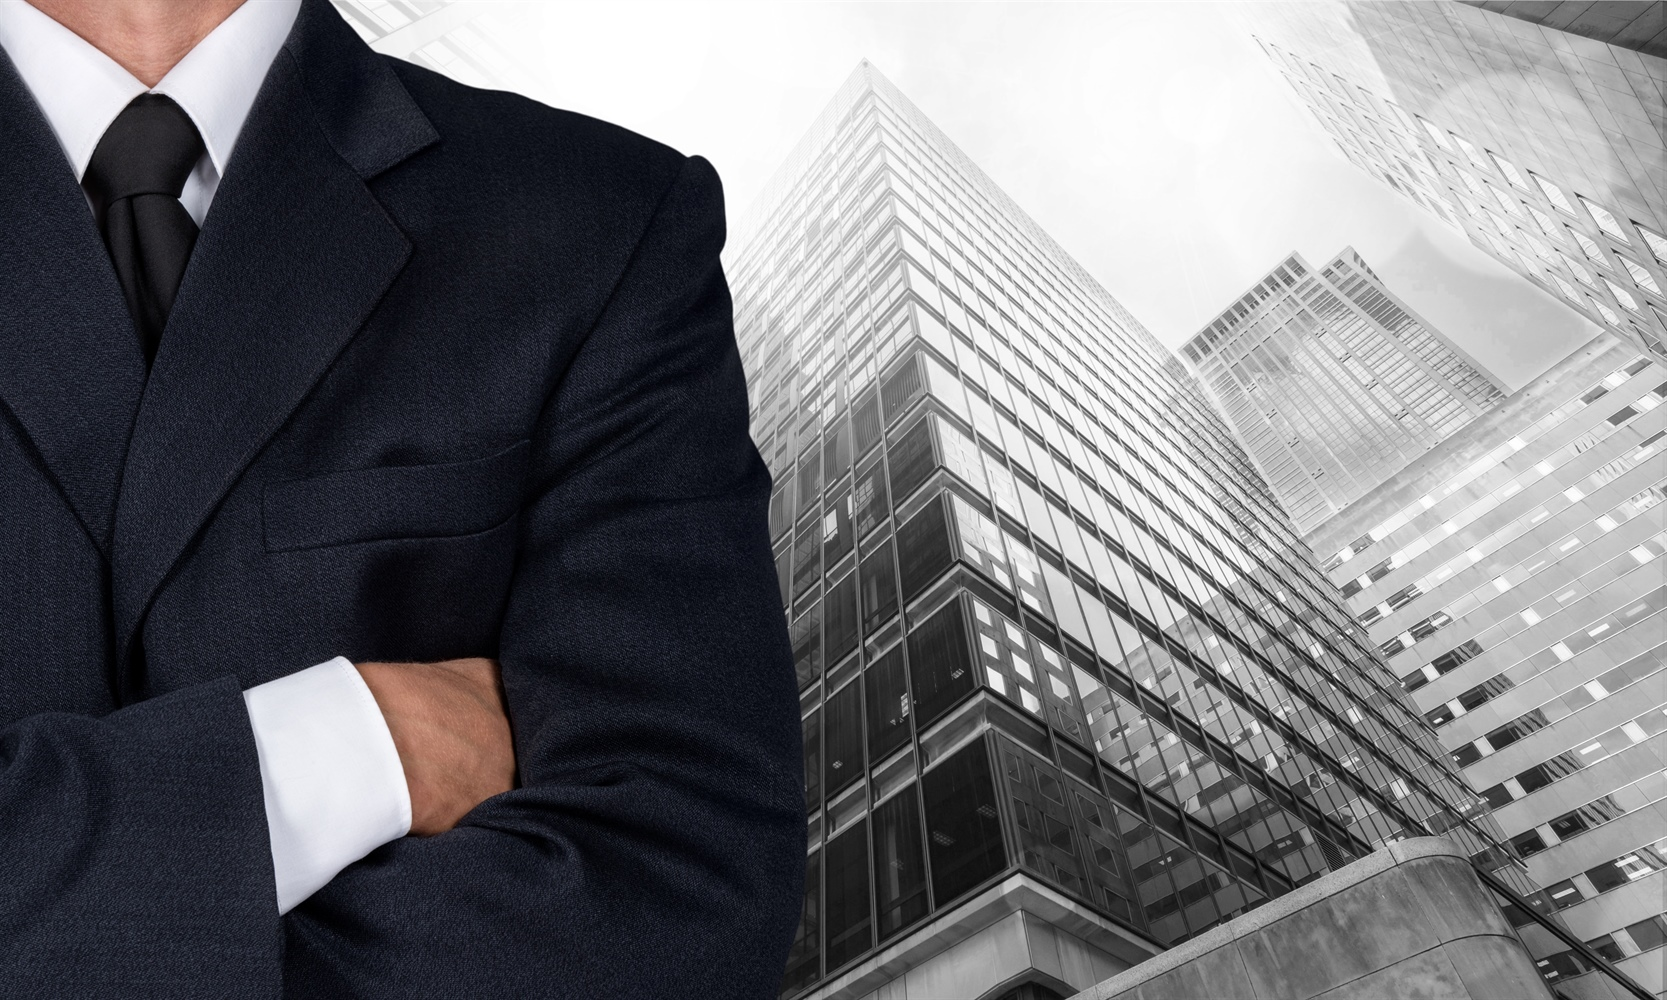 analisa industri bodyguard security service Bodyguard-securitycom registered for development this domain has been registered choose domain only, web packages, or other services.